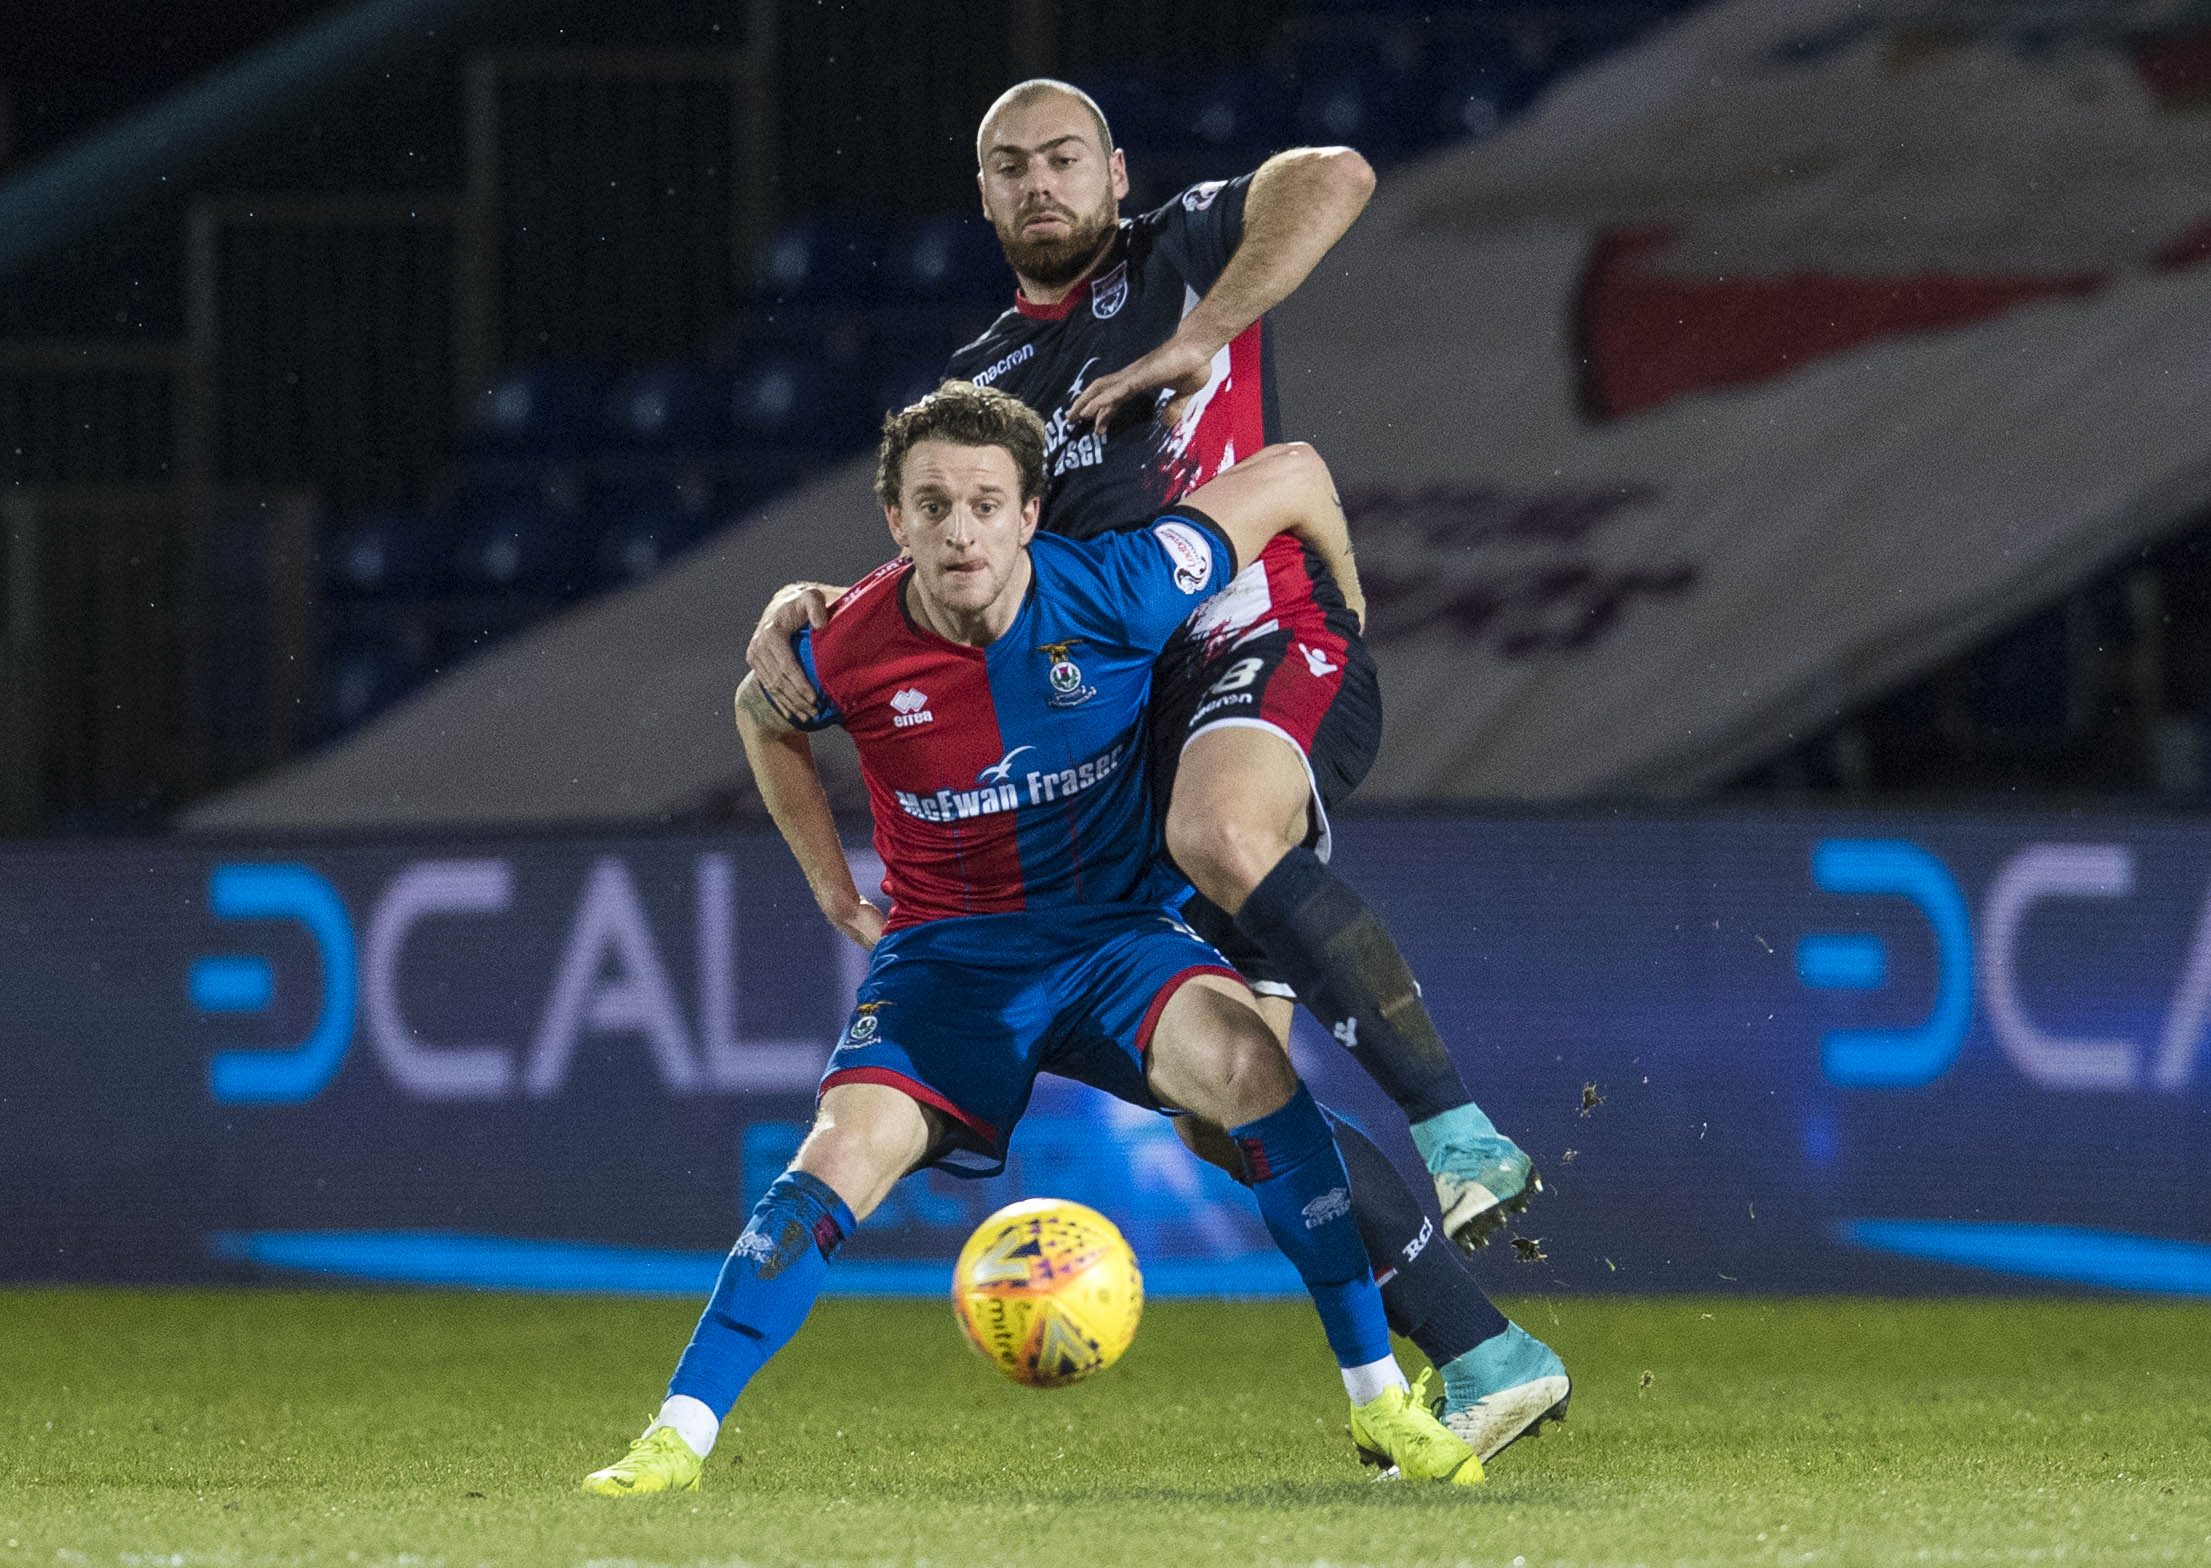 11/02/19 WILLIAM HILL SCOTTISH CUP 5TH ROUND ROSS COUNTY v INVERNESS CT THE GLOBAL ENERGY STADIUM - DINGWALL Inverness CT's Tom Walsh (L) in action with Ross County's Kenny Van Der Weg.